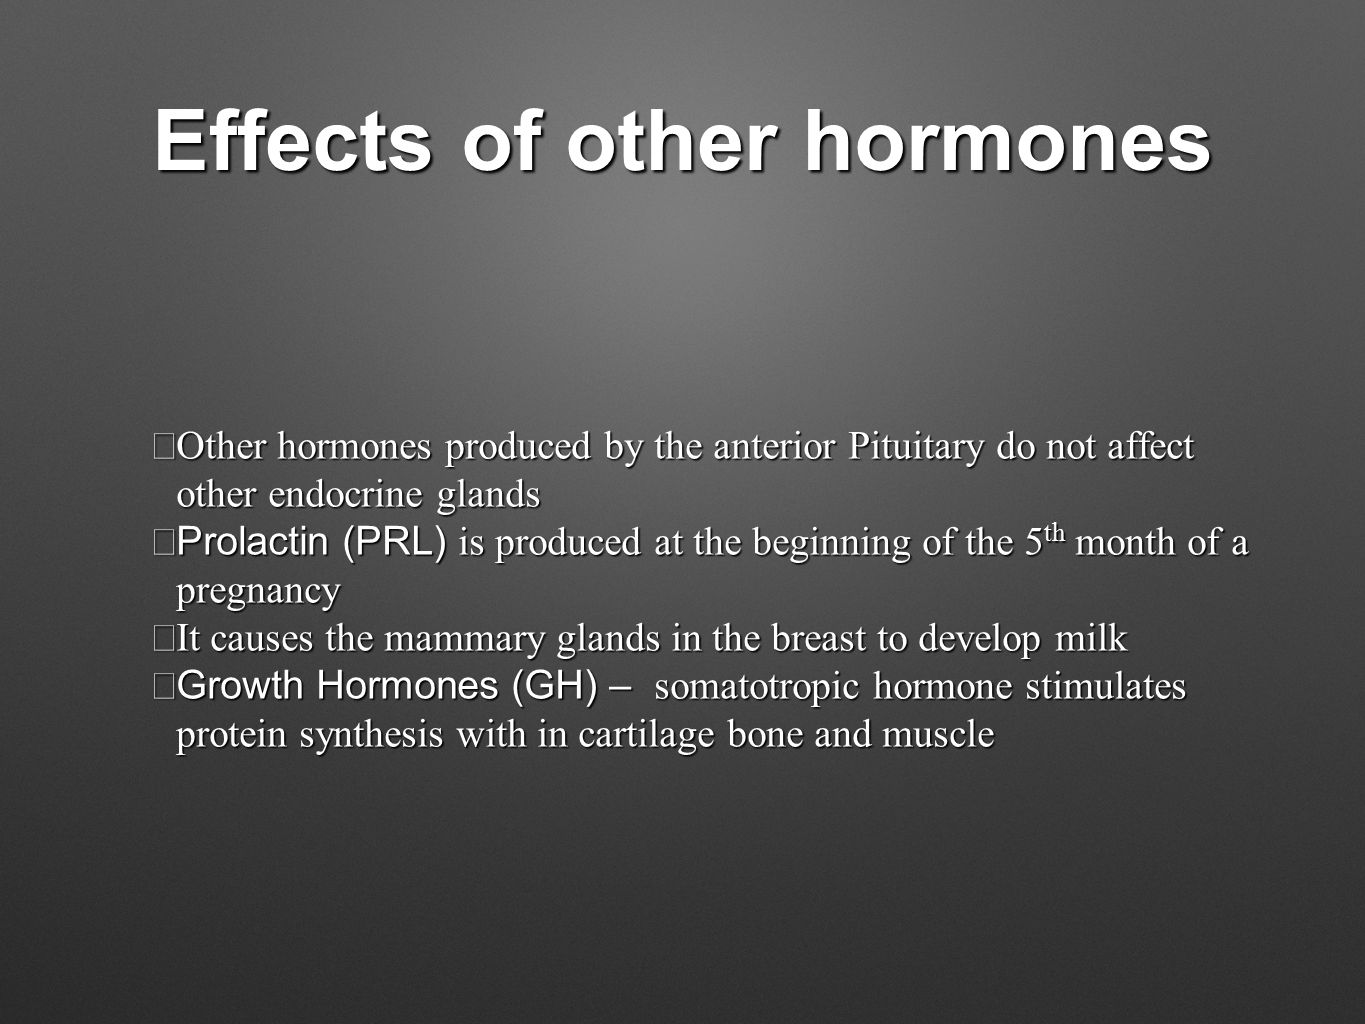 Effects of other hormones